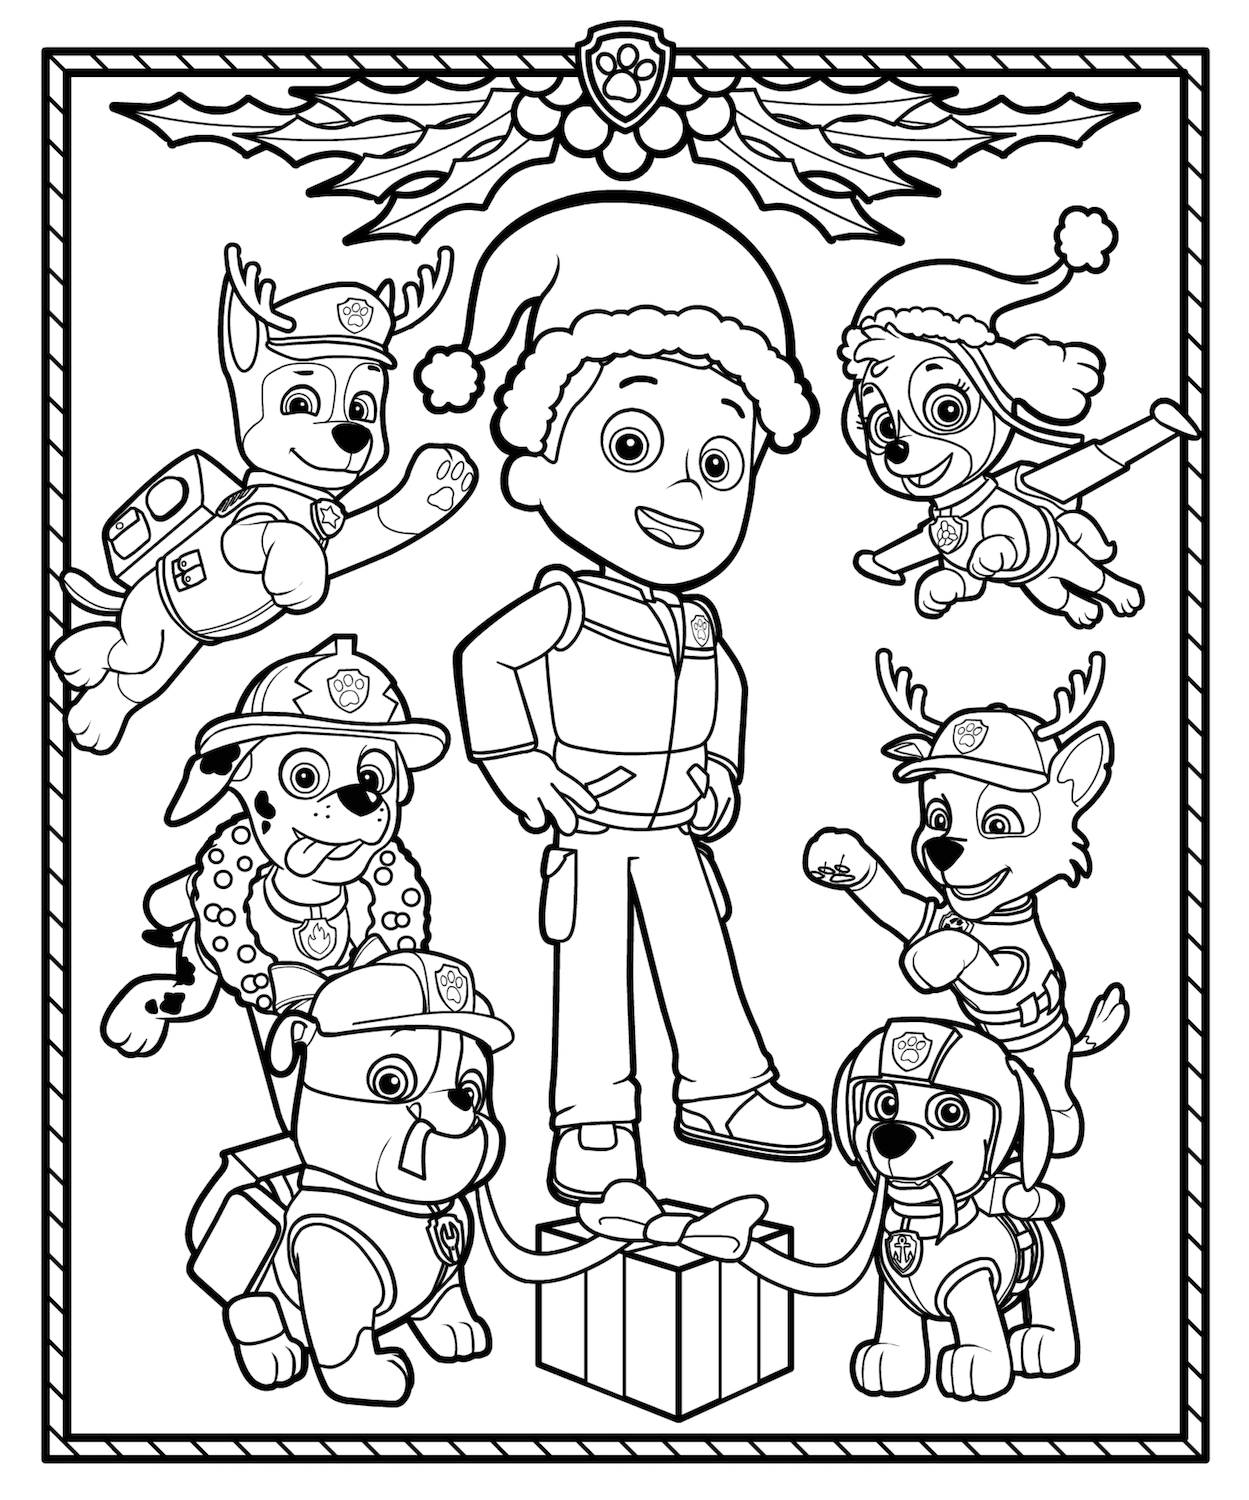 Christmas Coloring Pages For 4 Year Olds With